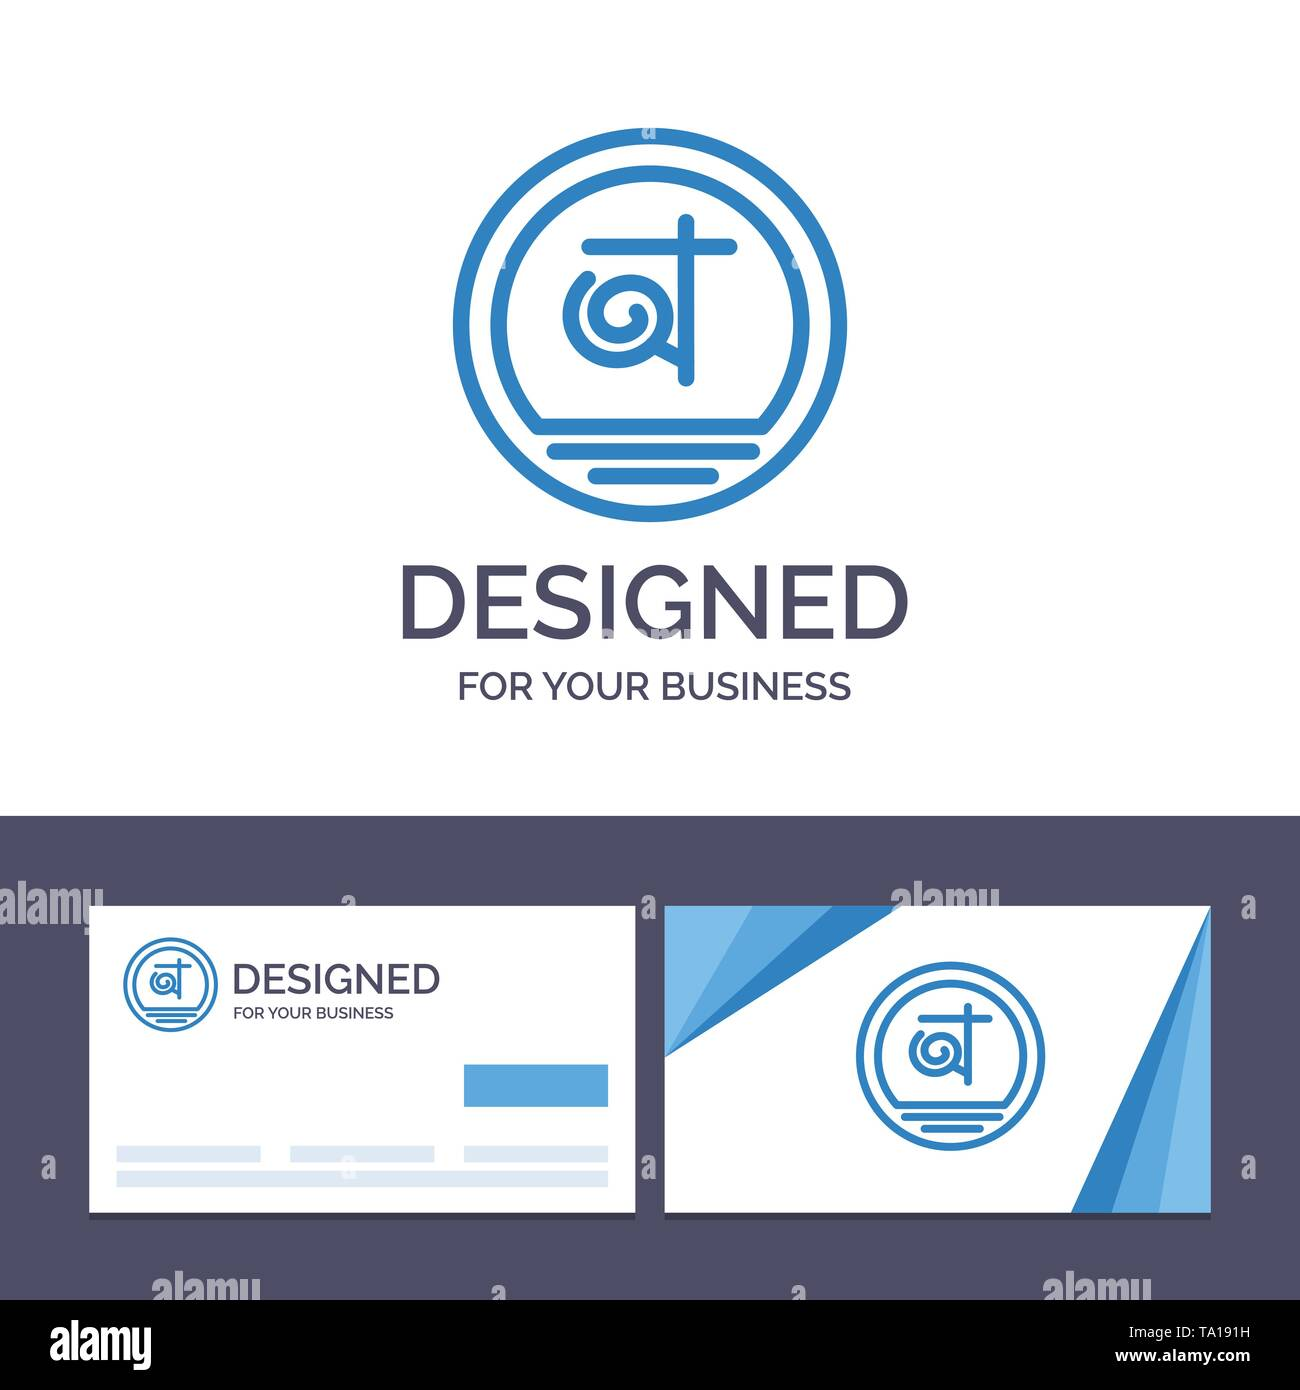 Creative Business Card and Logo template Bangla, Bangladesh, Bangladeshi, Business Vector Illustration - Stock Image